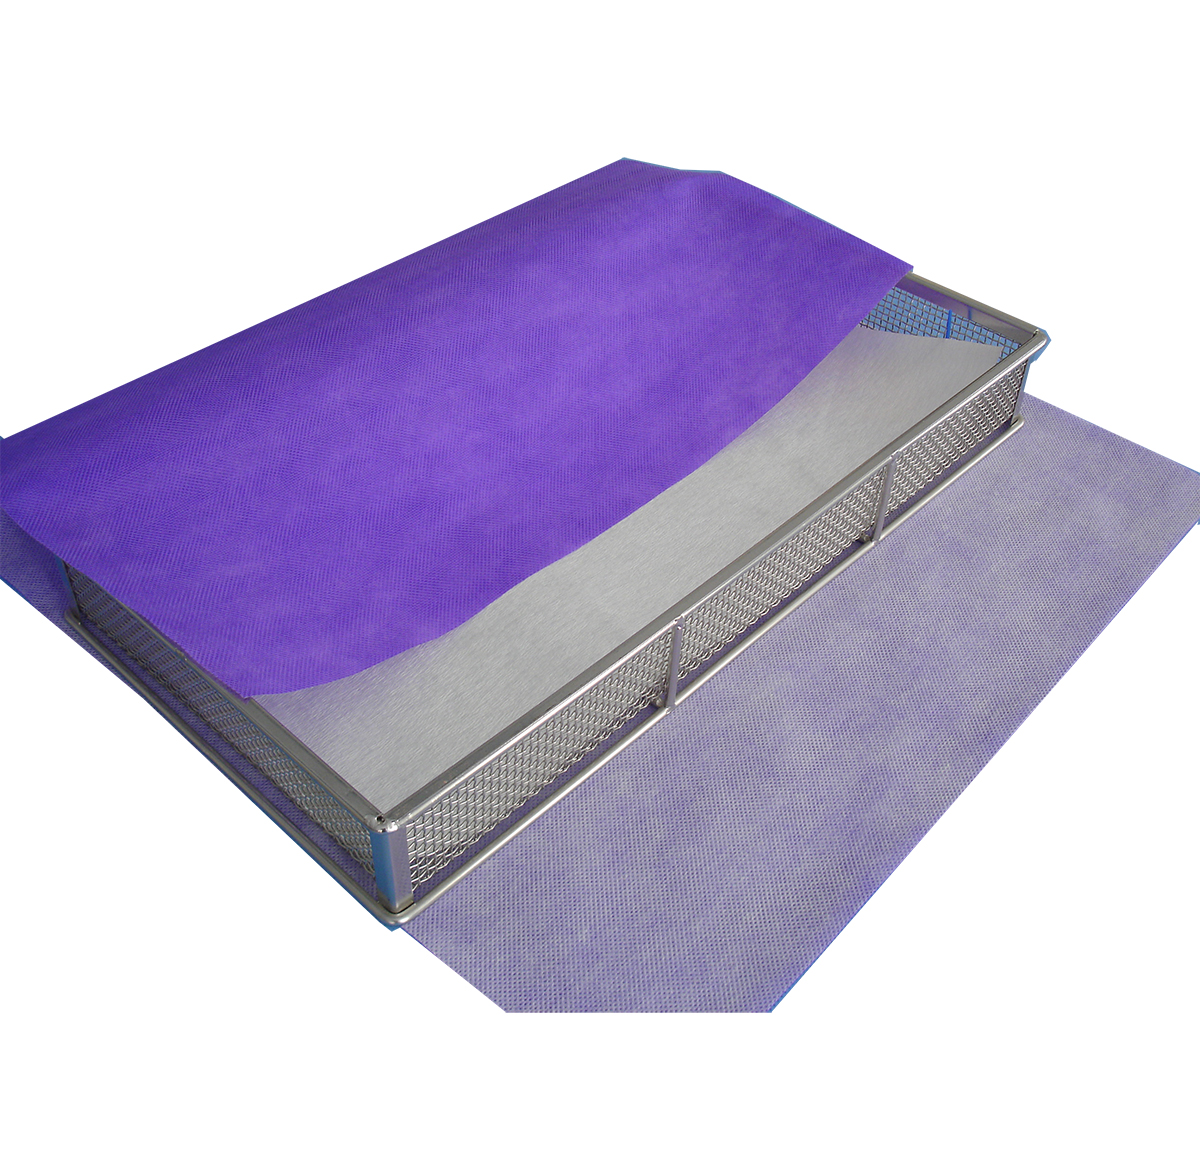 Absorbent and Protective Mats Image